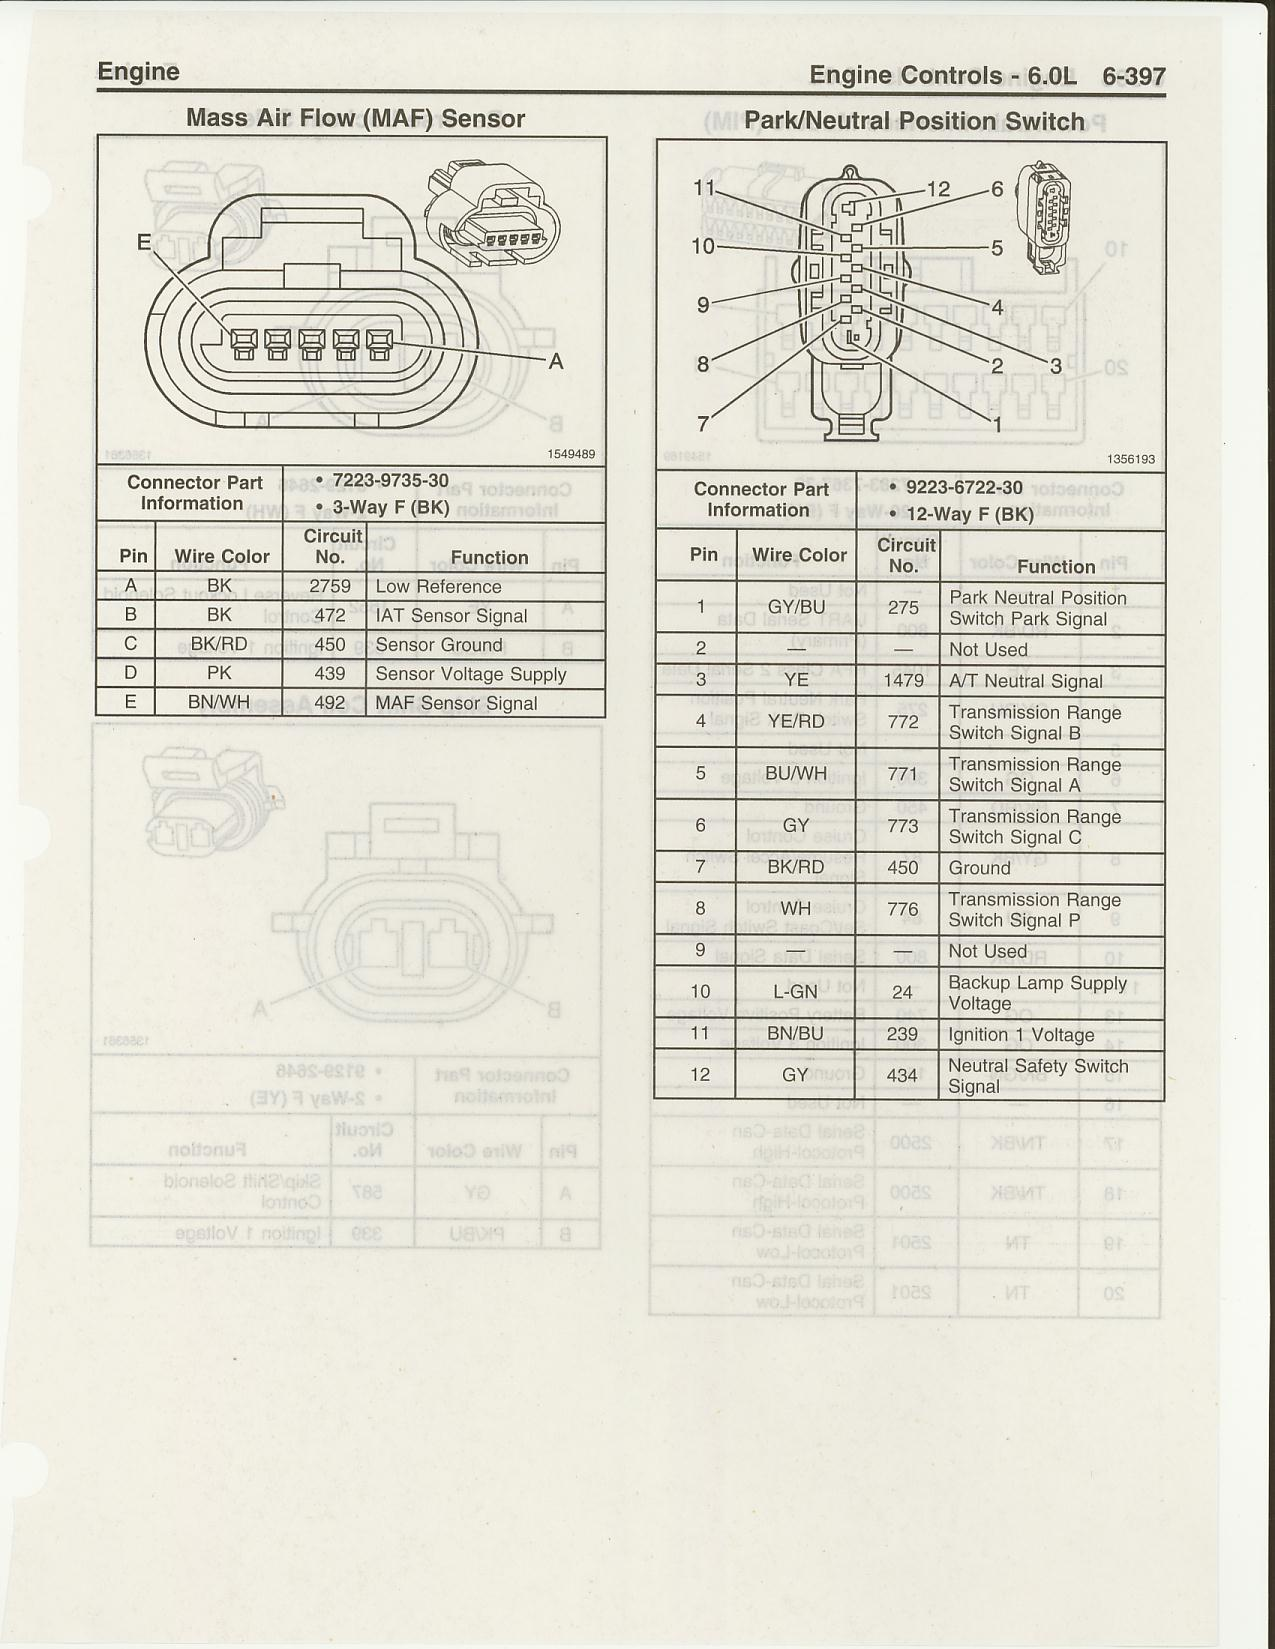 55 Cadillac Wiring Diagram Wire Data Schema 1956 Harness Ls2 Maf Sensor Pinouts Ls1tech Camaro And Fleetwood Schematic